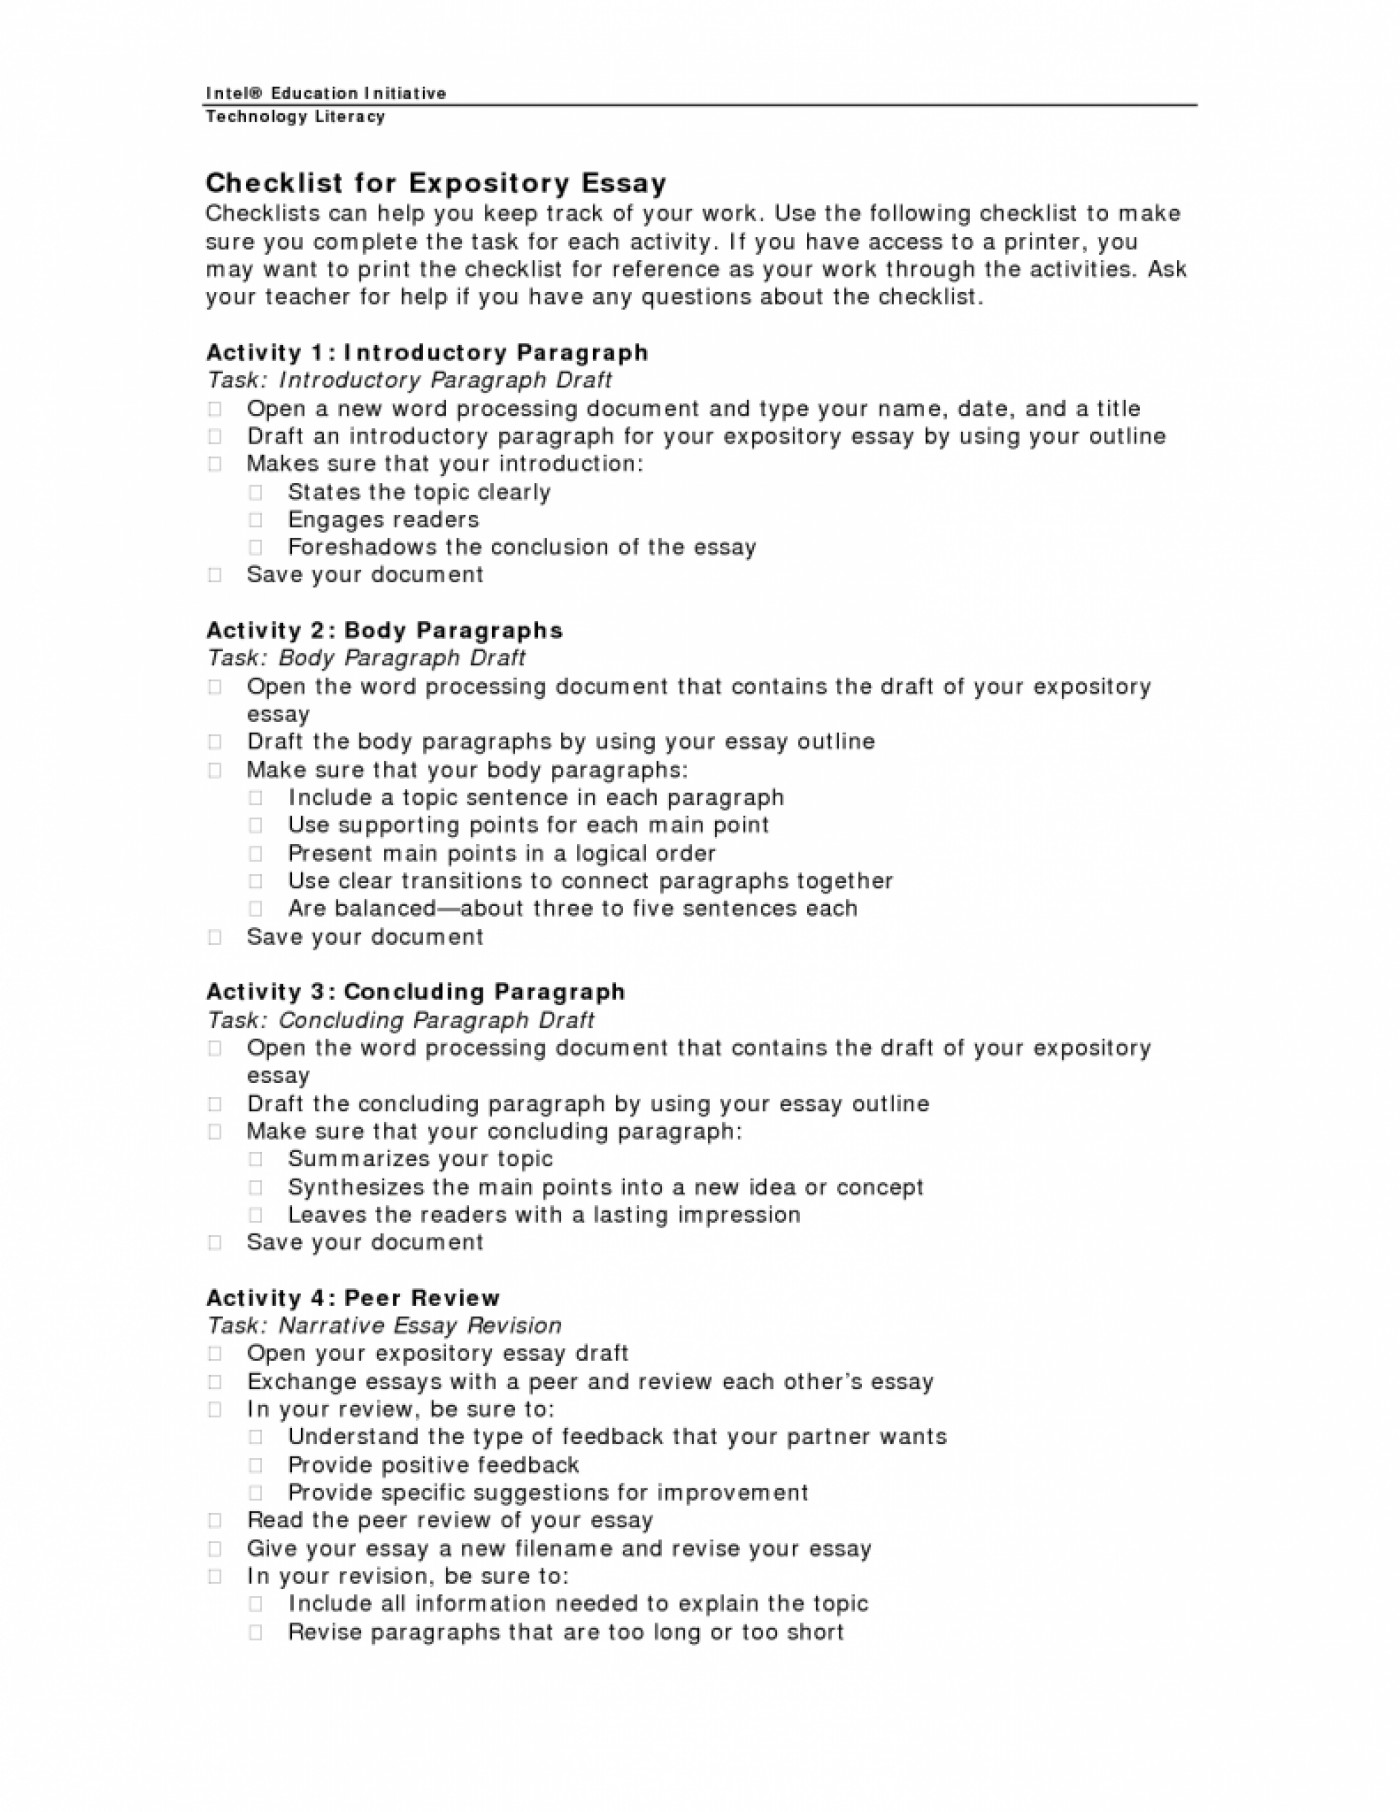 023 Expository Essay Checklist 791x1024 What Is An Magnificent Gcu Middle School Powerpoint 1400